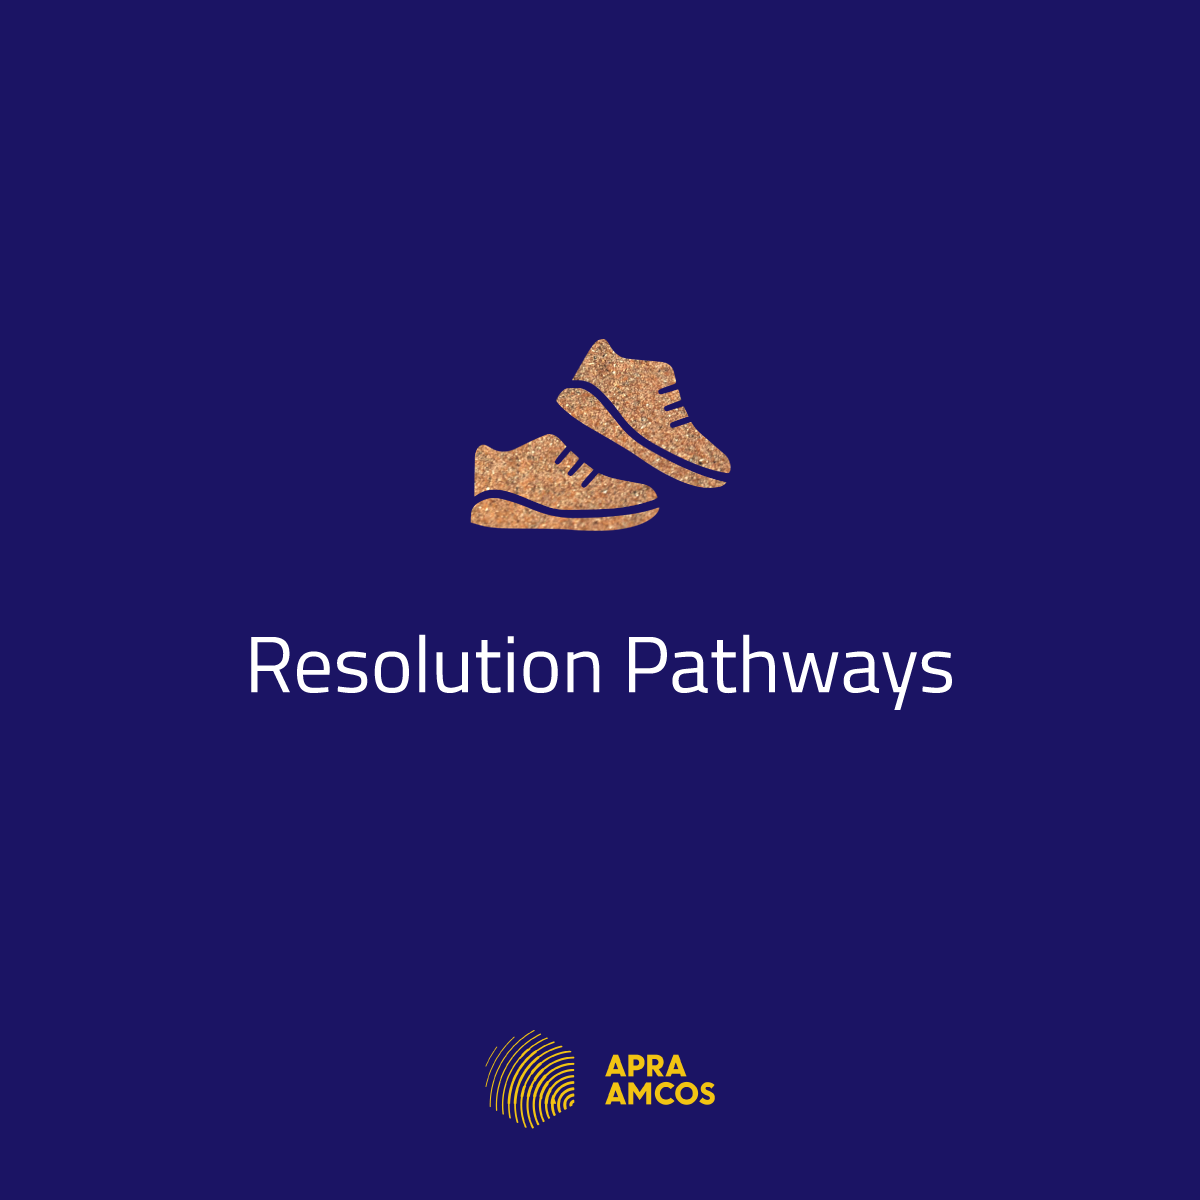 resolution-pathways-codacora-project